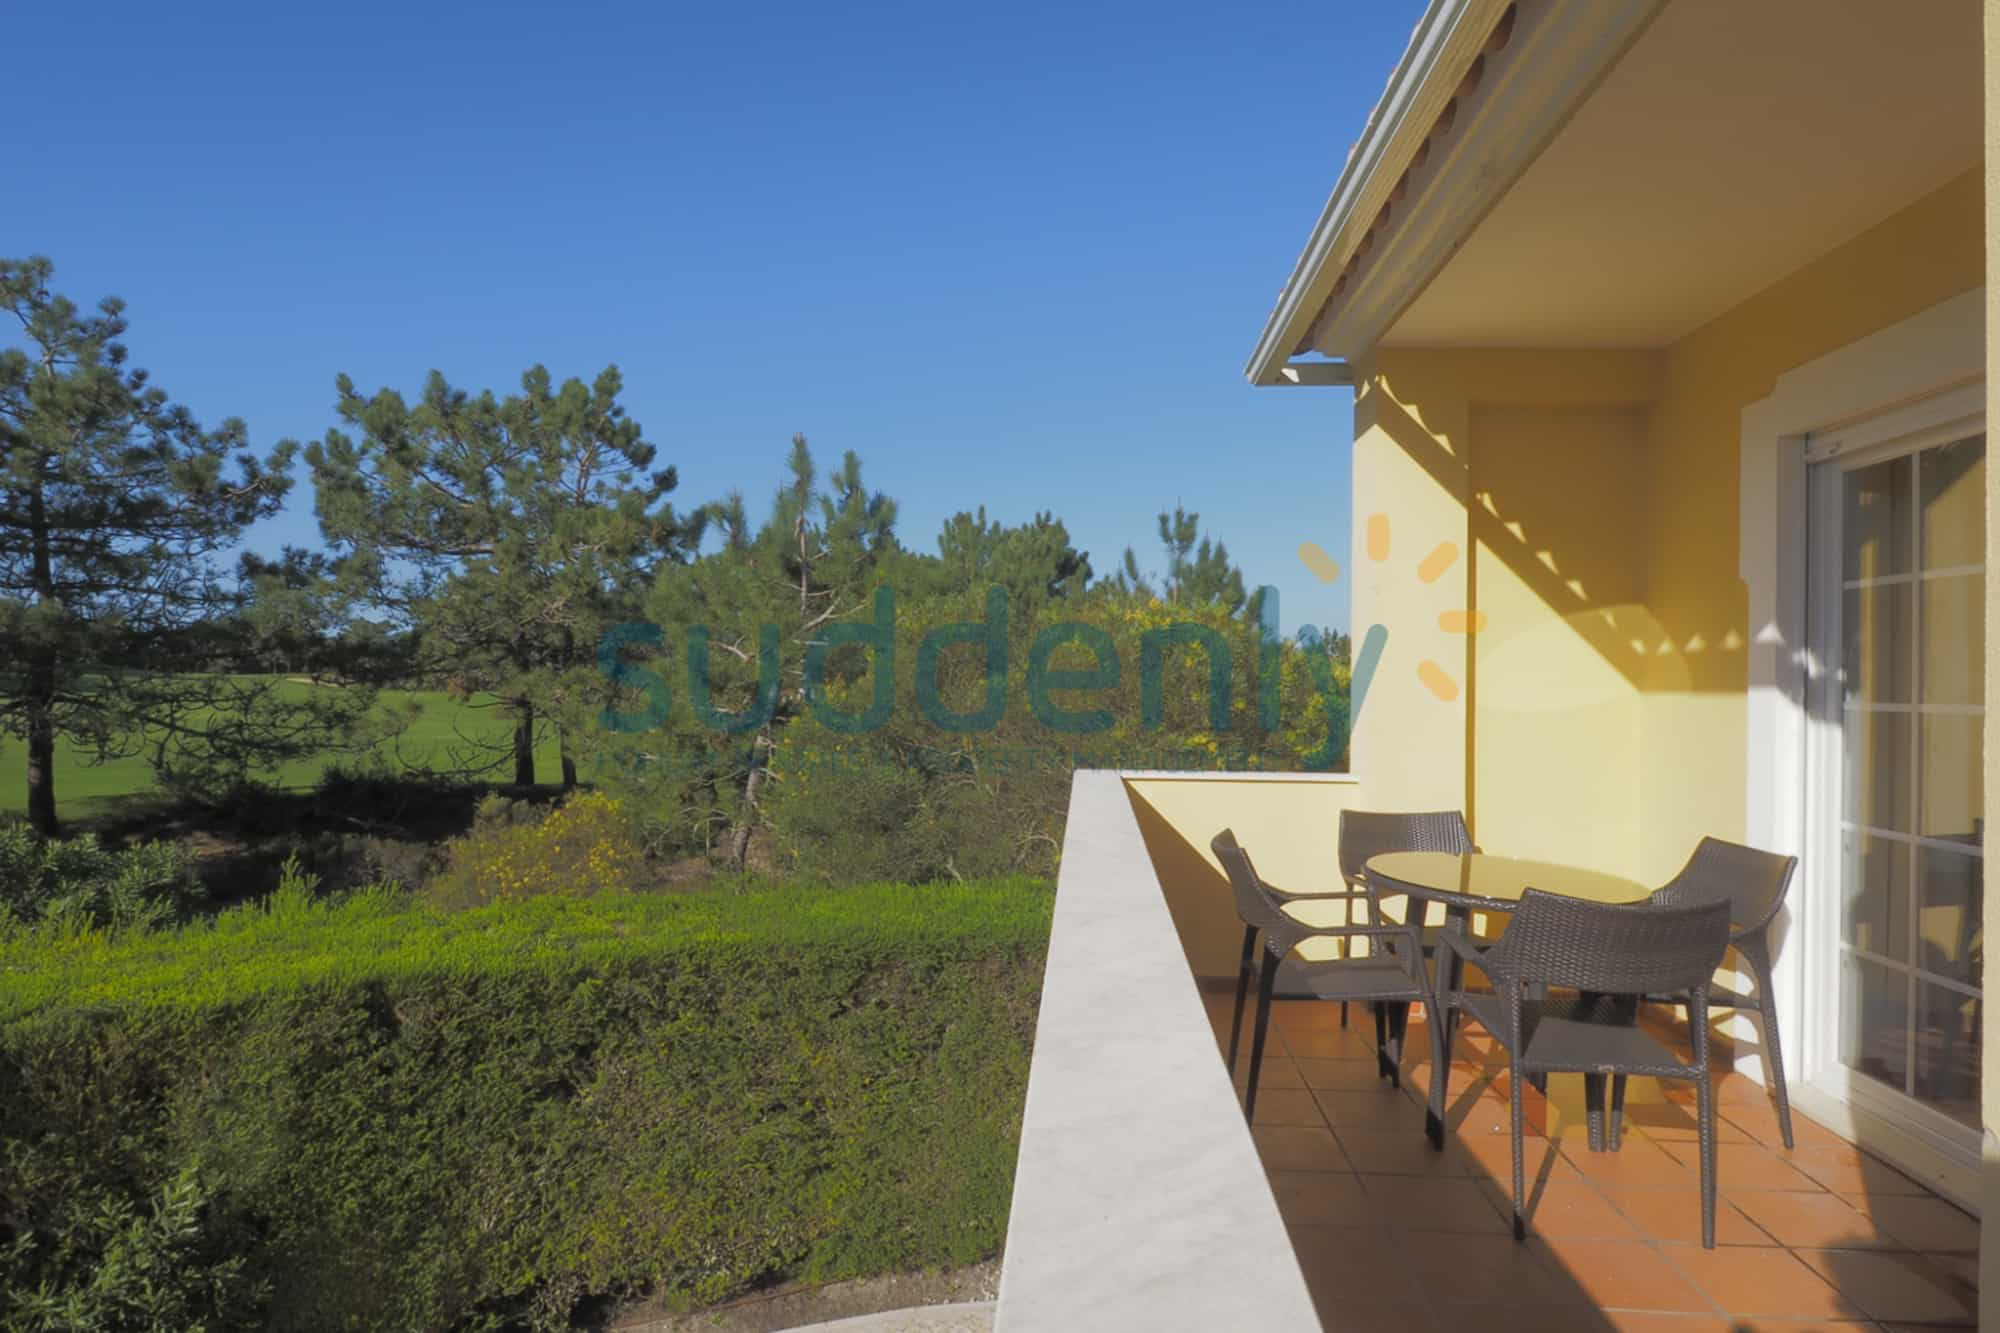 Holiday Rentals in Praia D'El Rey 225